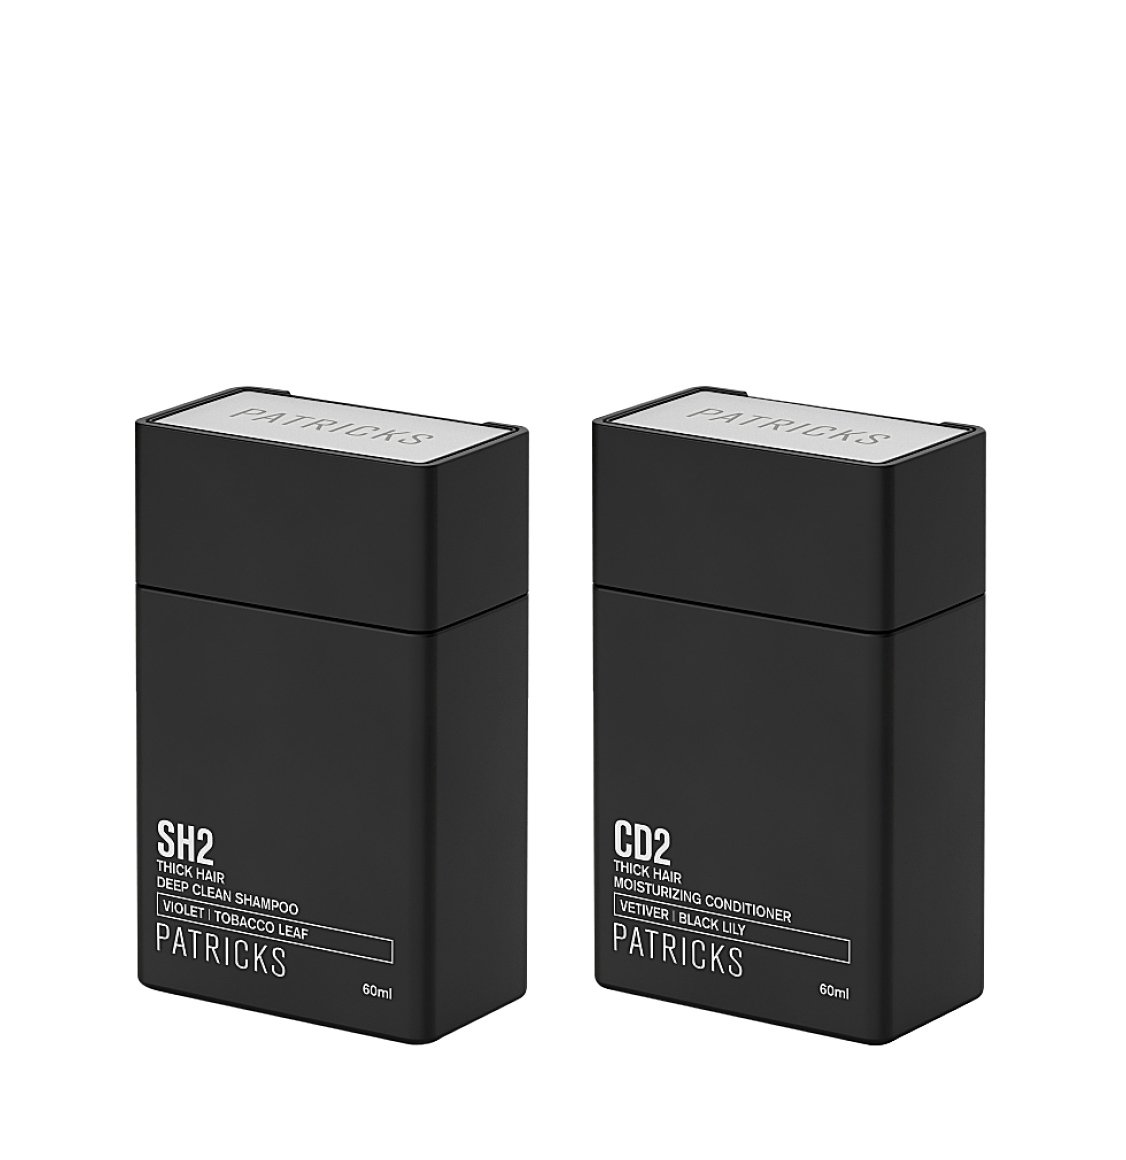 Patricks SH2 | CD2 Shampoo and Conditioner Travel Set